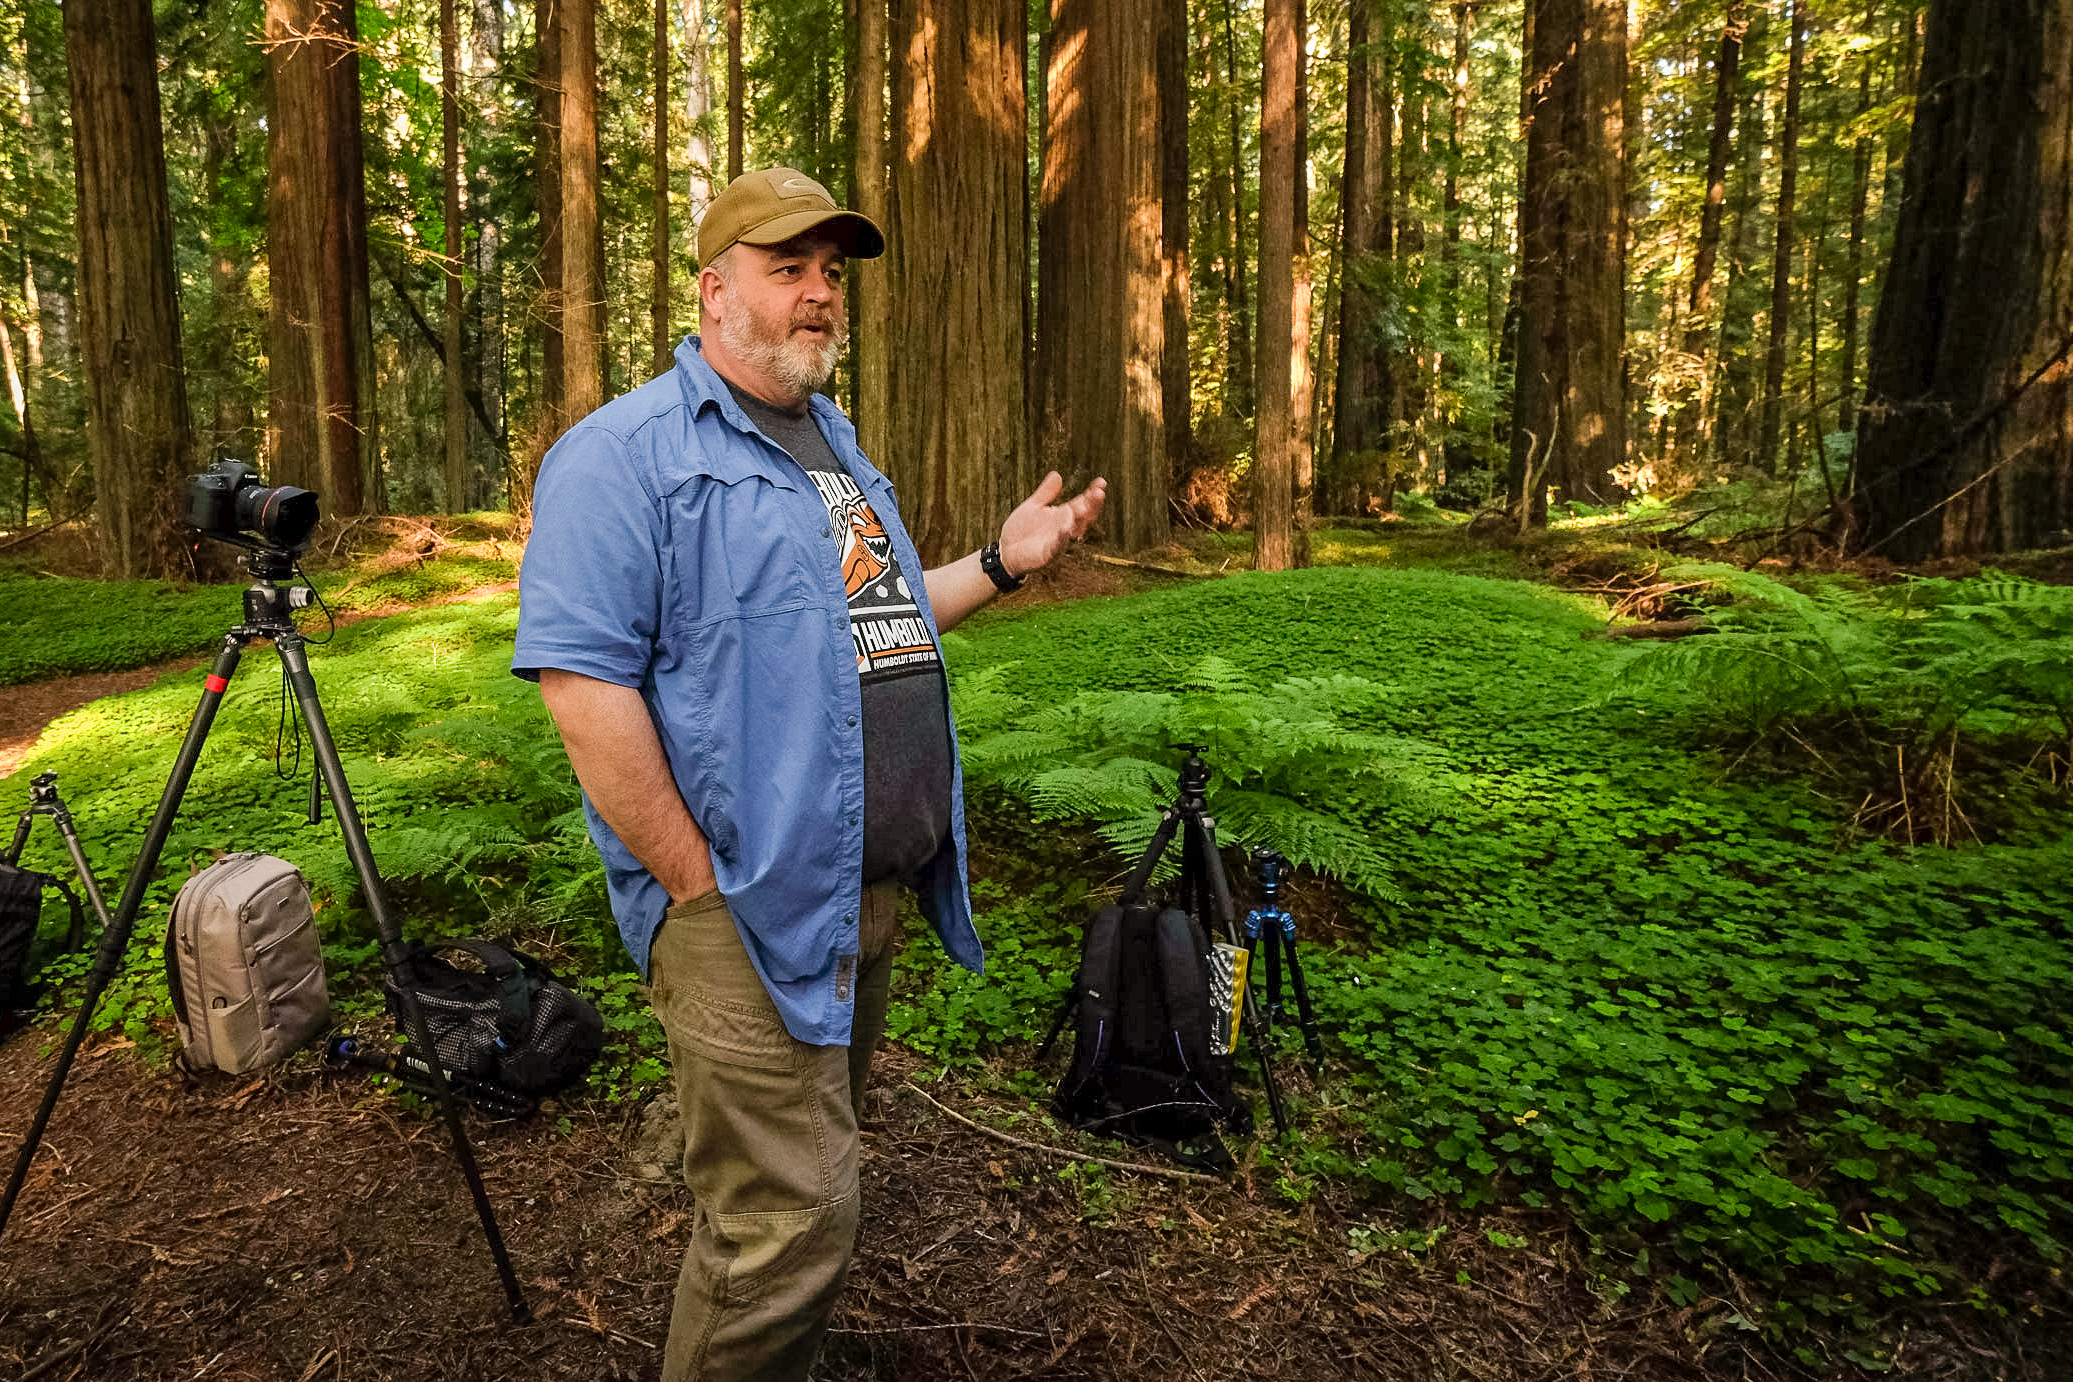 Mason Marsh leading a photo workshop in Redwoods National Park  Camera: Fujifilm X-T1 Shutter speed: 1/60 sec Aperture: f/4 ISO: 1600 Photo: Jeff Carlson